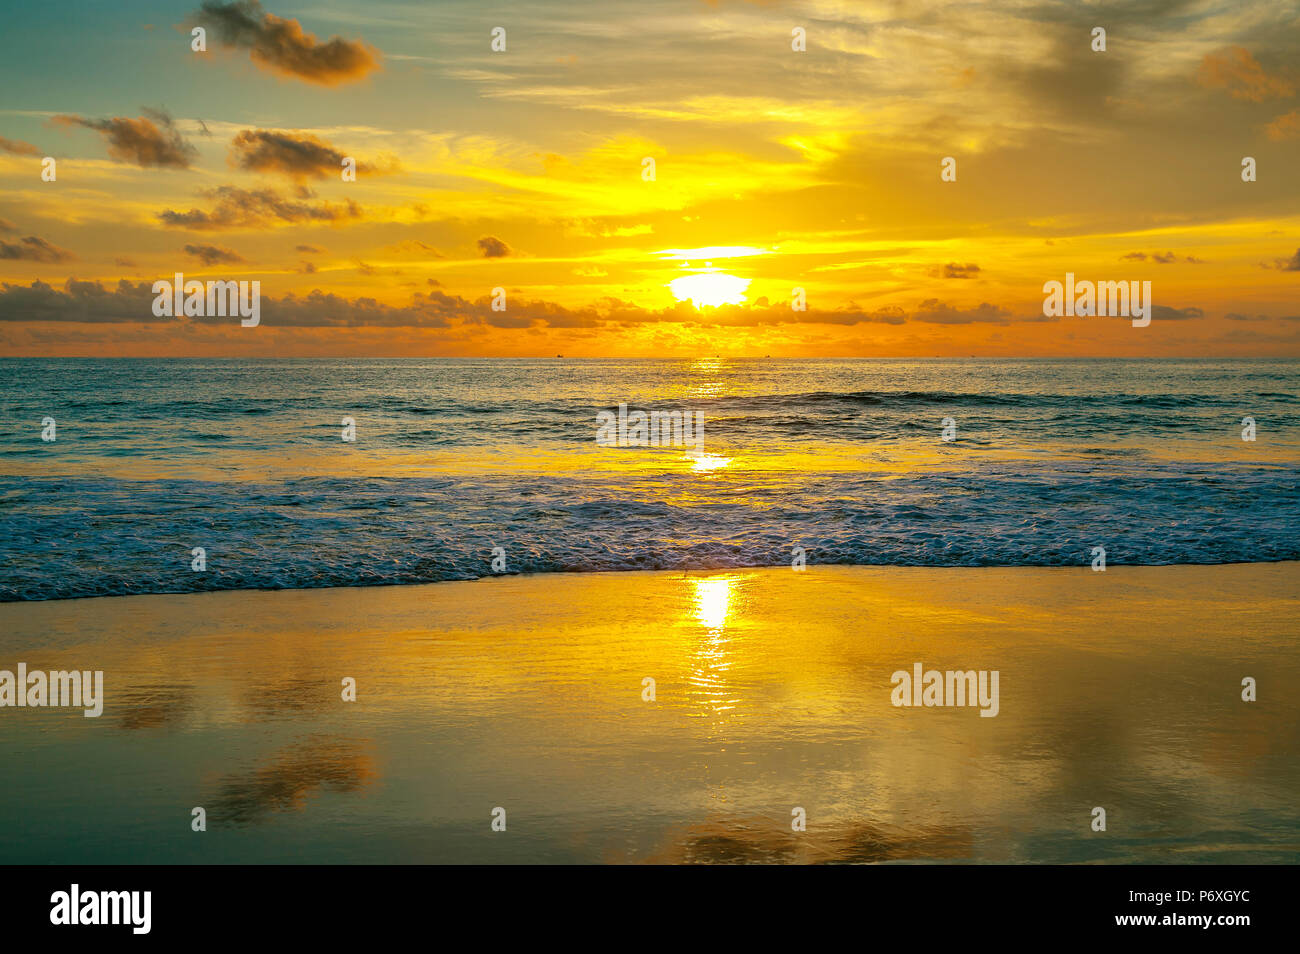 Colorful sunset on Karon beach. Phuket Island in Thailand. - Stock Image